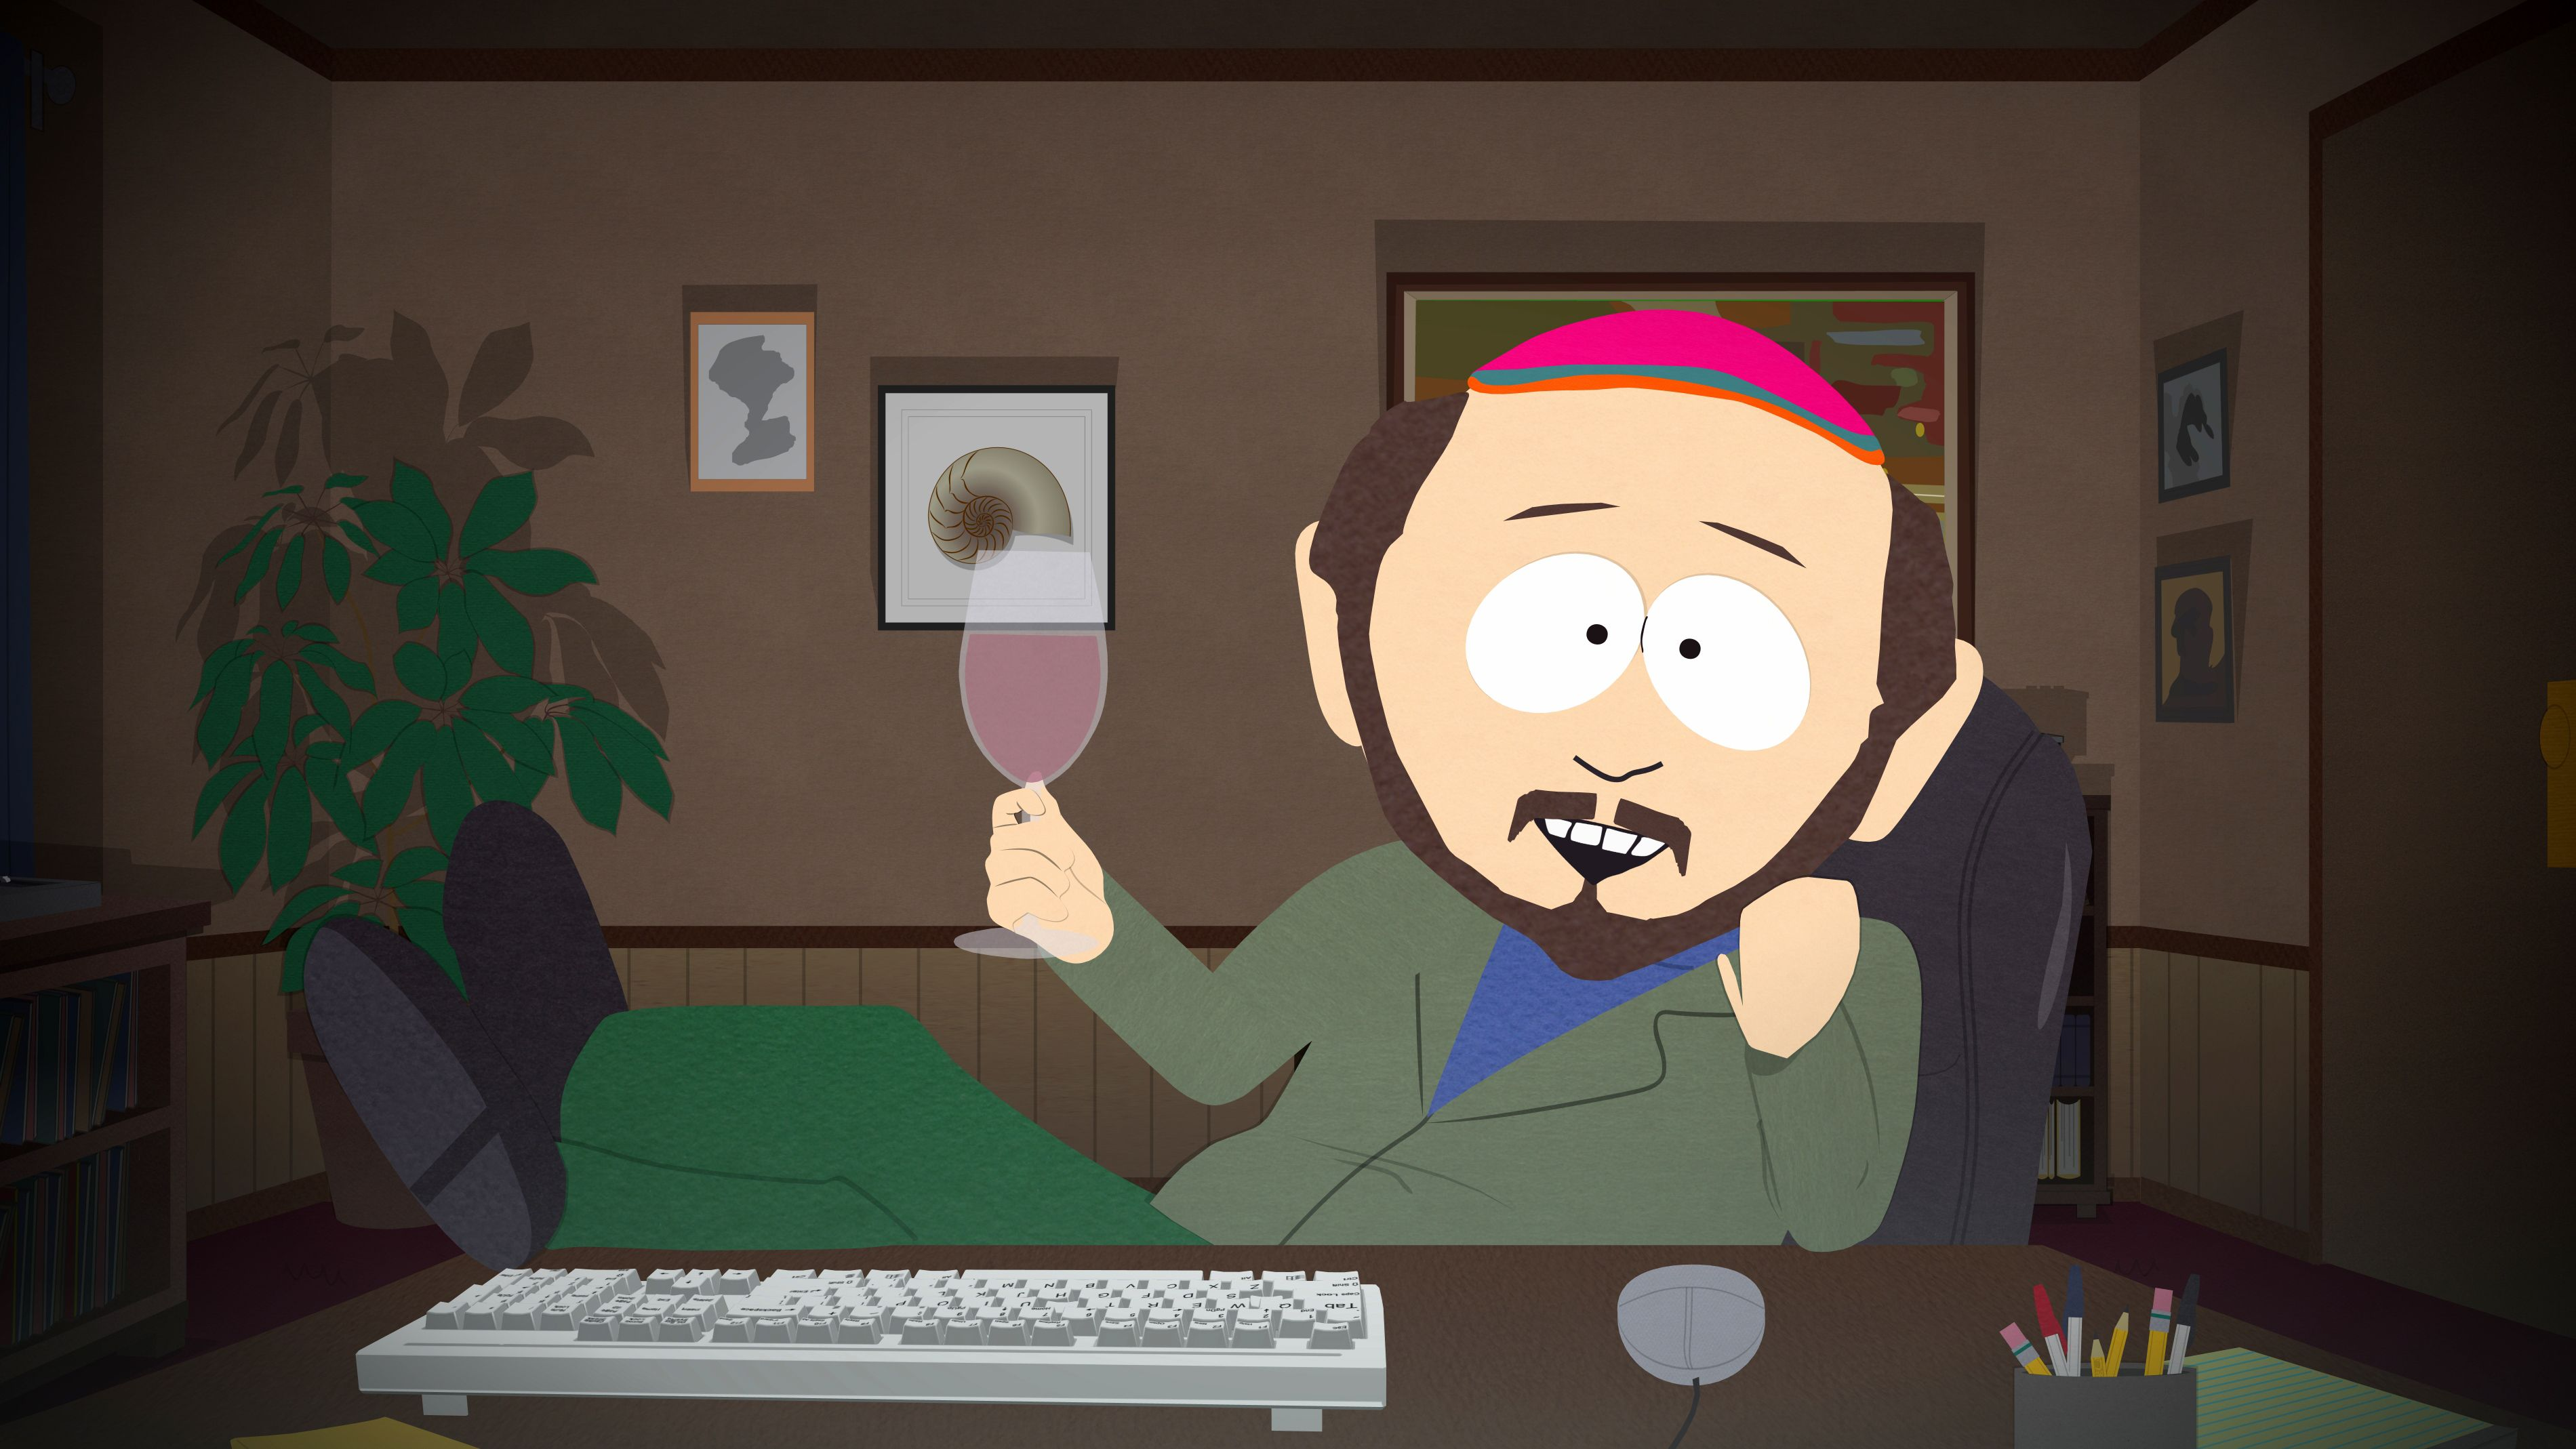 south-park_2003_the-damned_gerald_1.jpg